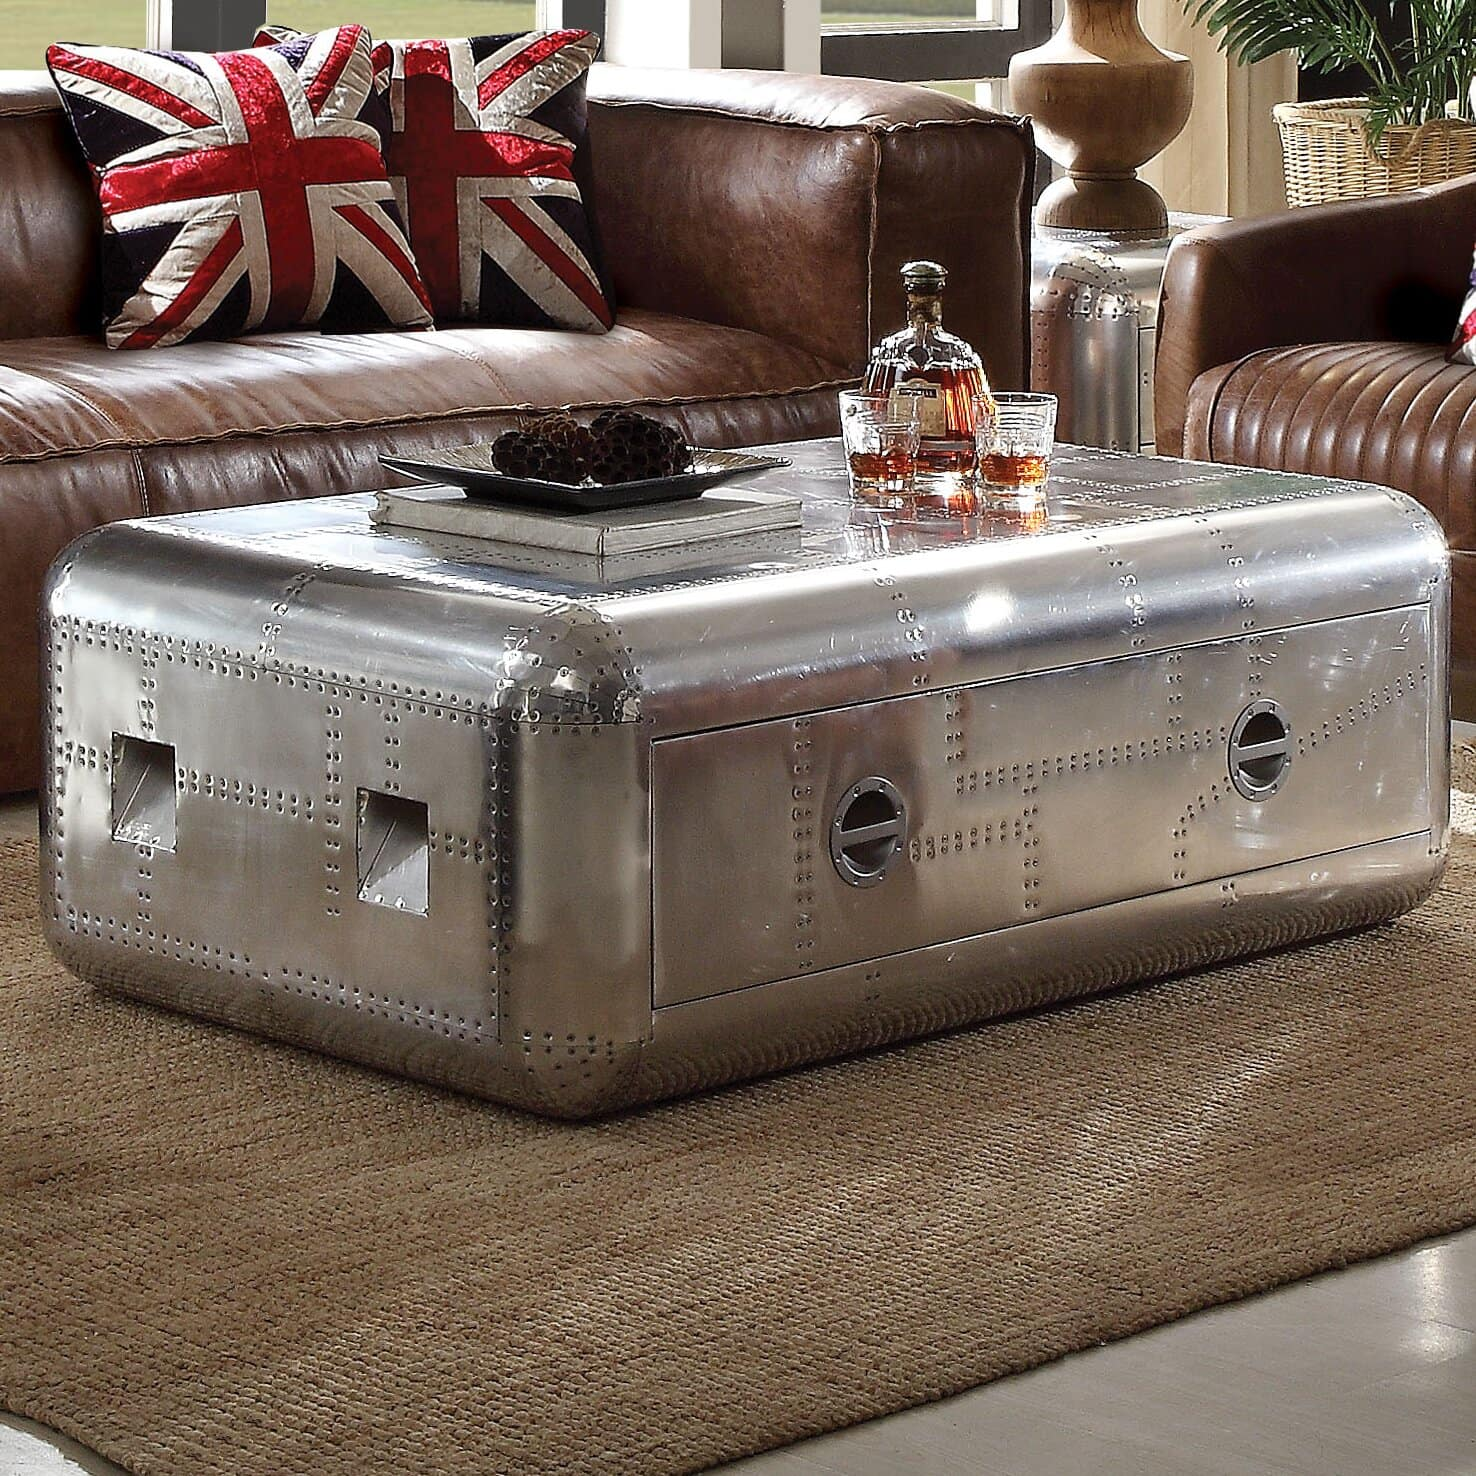 Incorporate A Cool Coffee Table